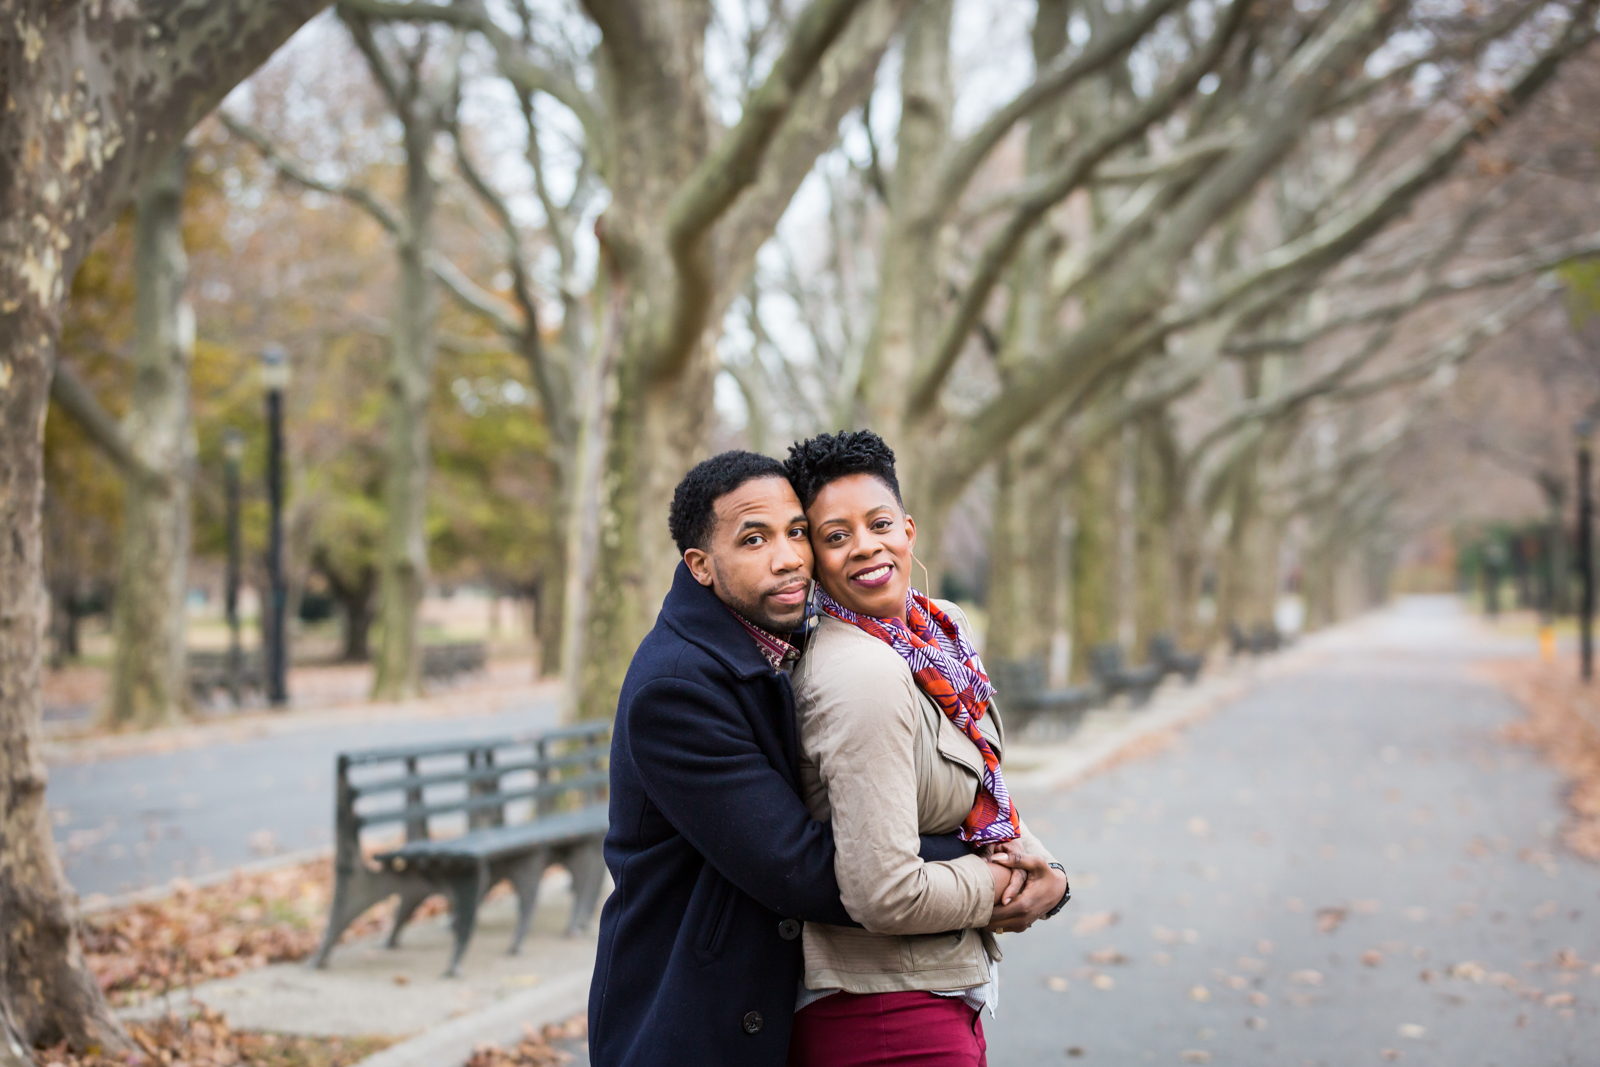 Flushing Meadows Corona Park family portrait of parents hugging